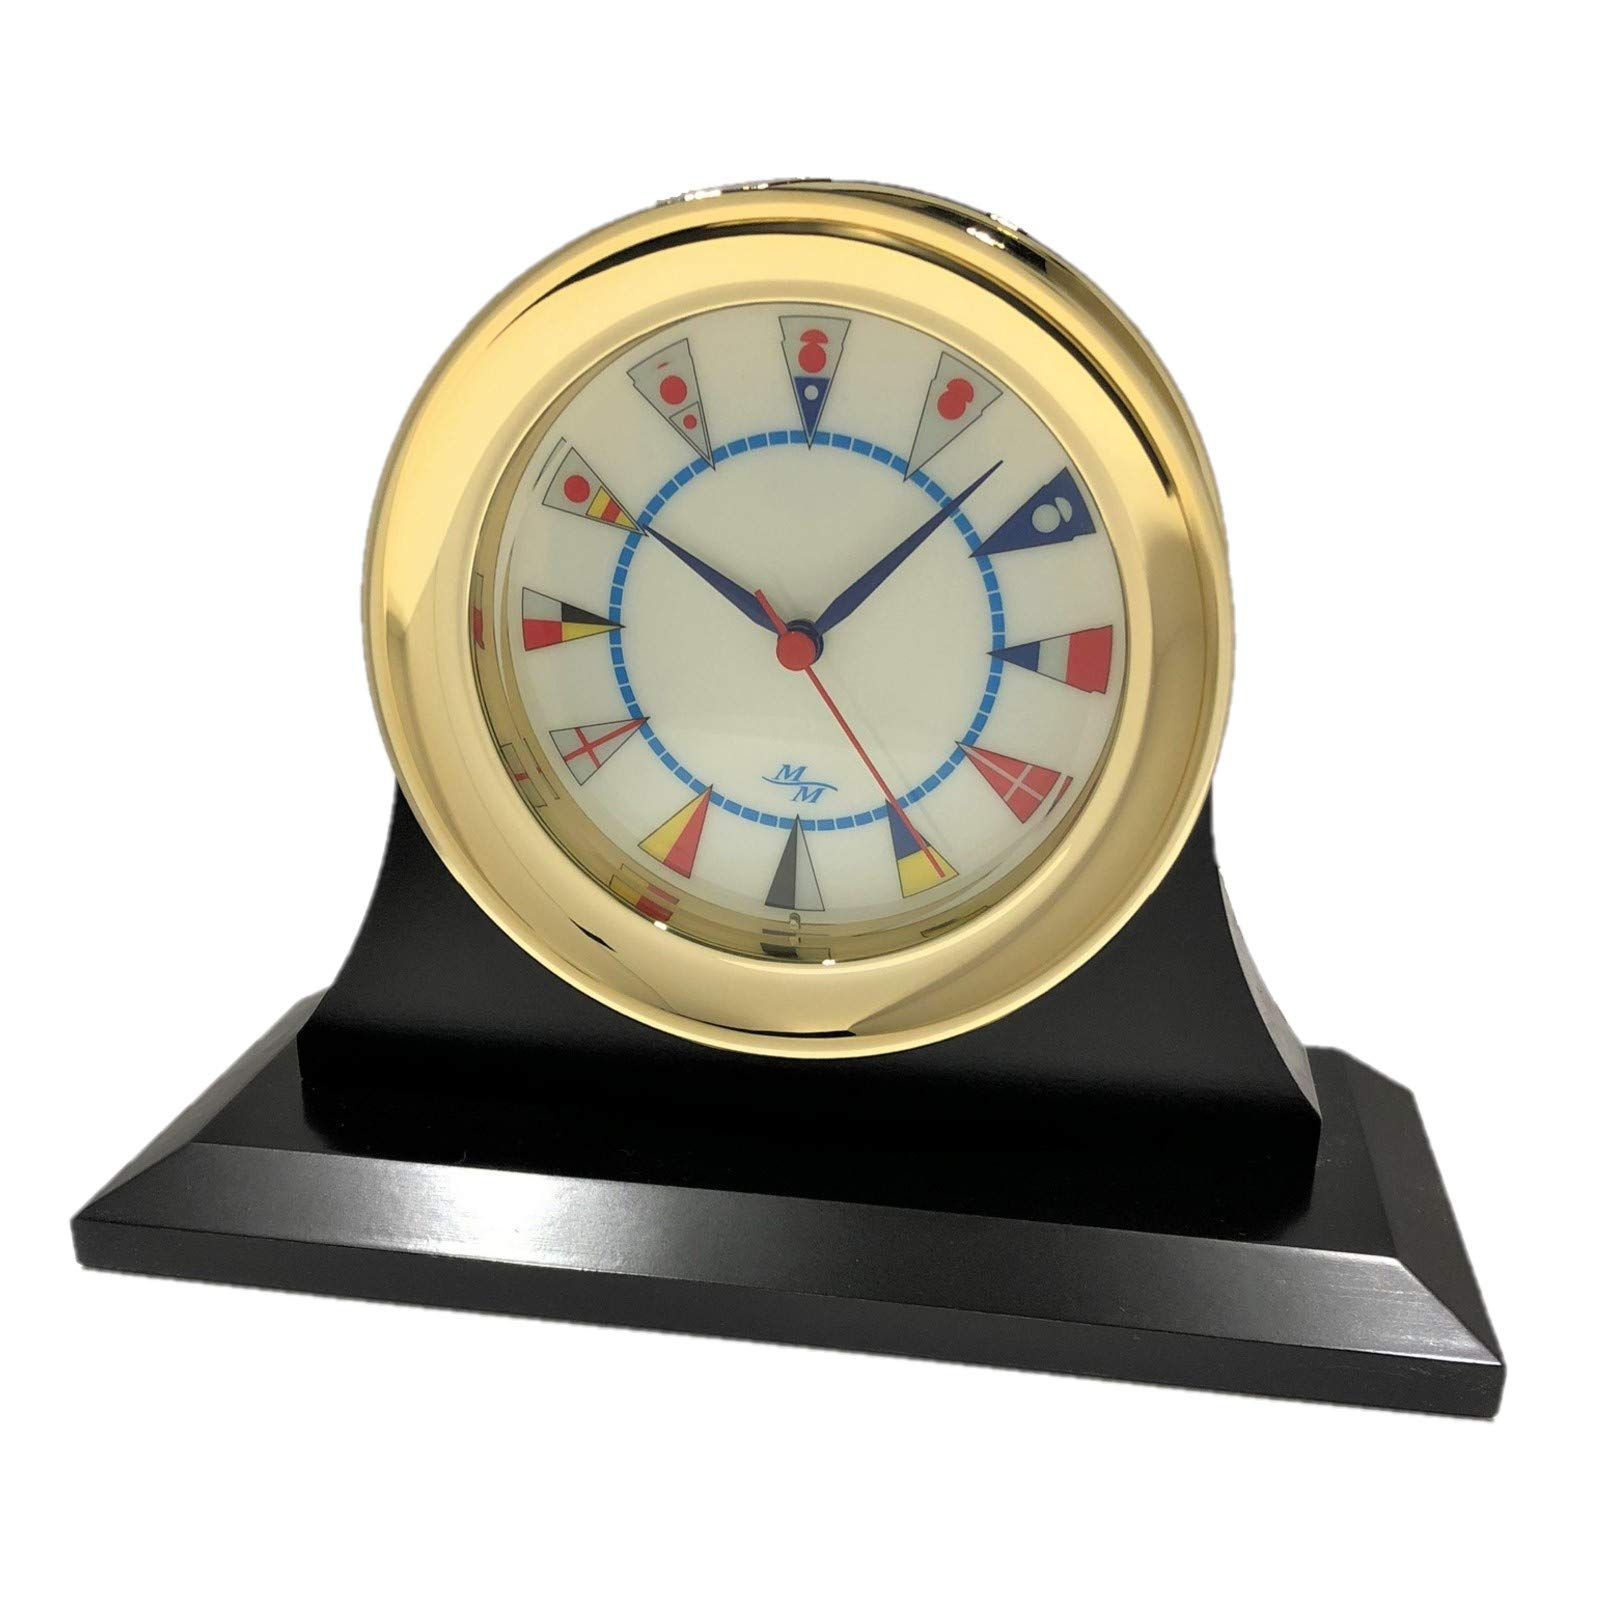 """Master-Mariner American Voyager Collection, Nautical Windlass Clock, 5.85"""", Gold Finish, Ivory Signal Flag dial and a Single Cradle Base, Ebony Finish, with Silvertone and Goldtone Nameplates"""